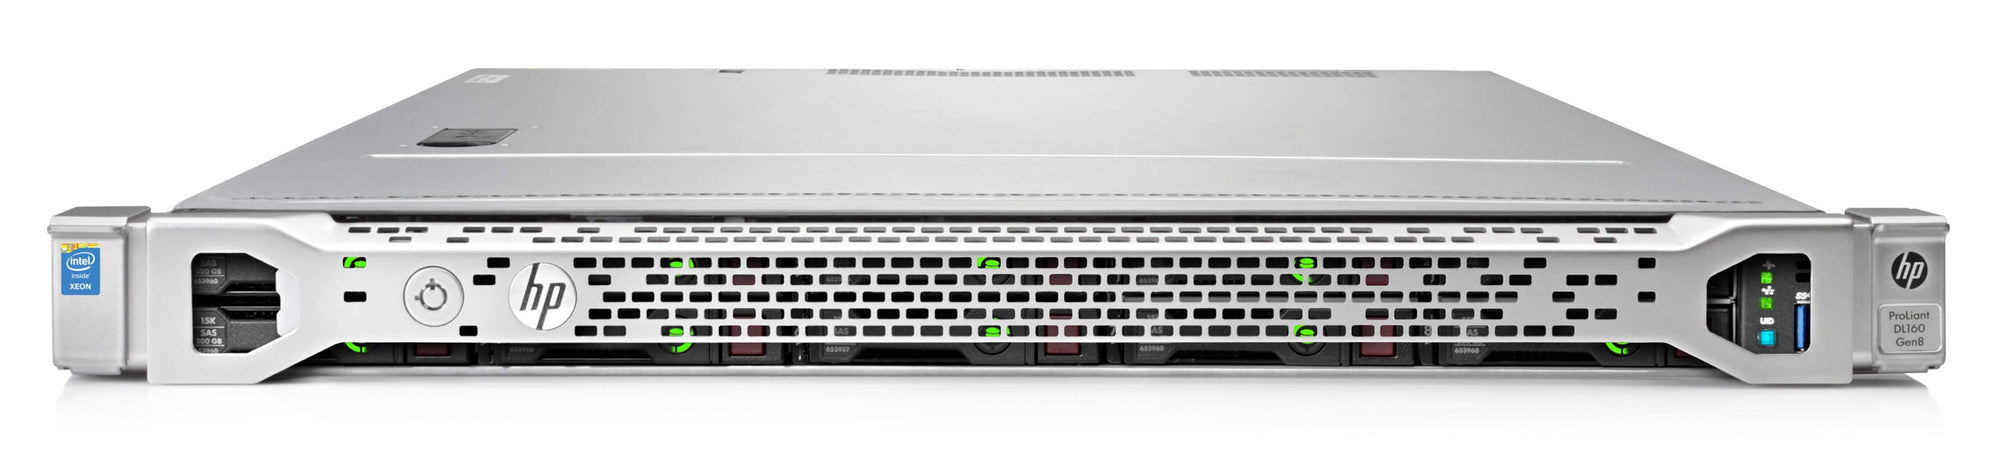 Refurbished HPE ProLiant DL160 Gen8 Configure to Order Server